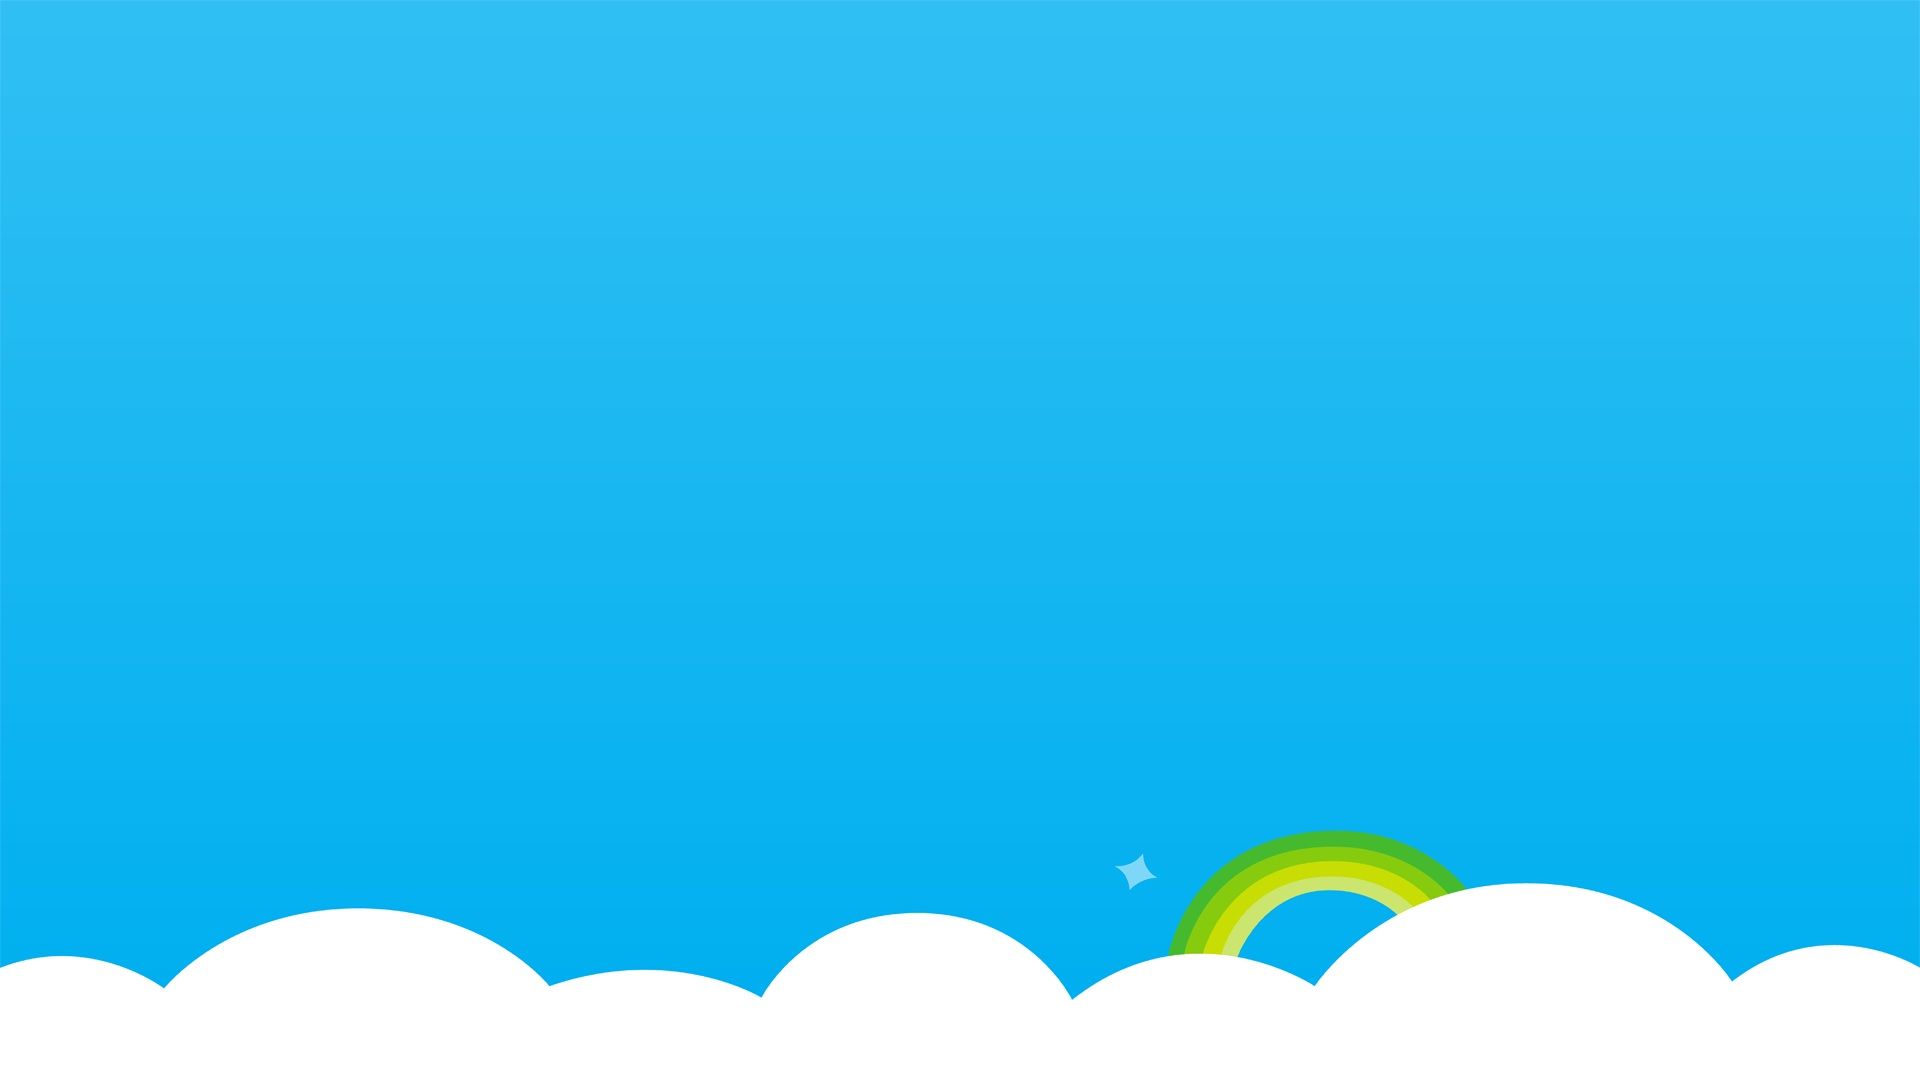 skype desktop wallpaper 62813